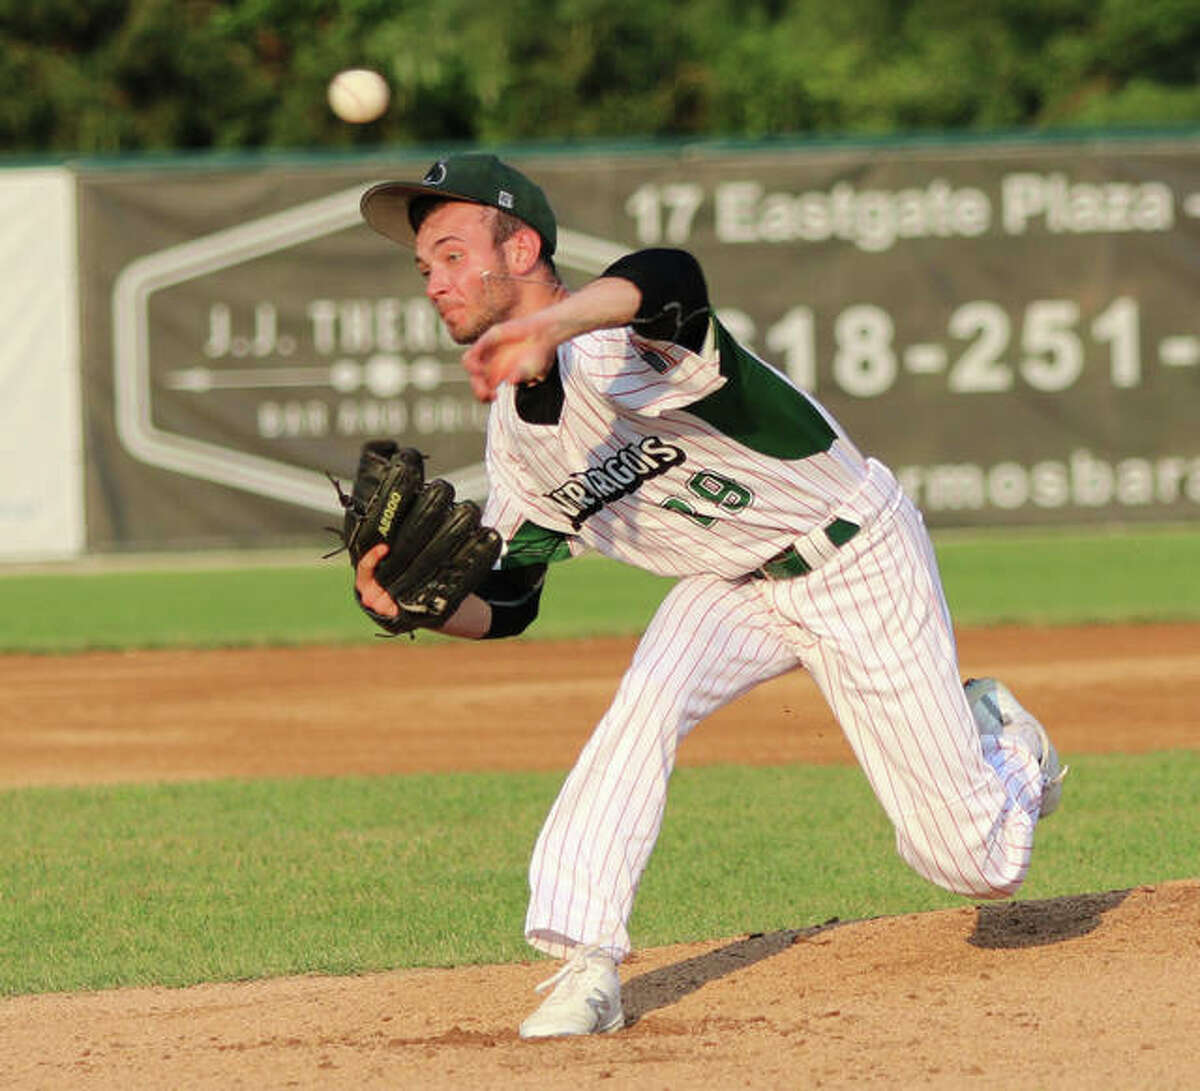 River Dragons pitcher Alex Redman, shown in a July 4 start at Hopkins Field in Alton, picked up the win over the Clinton LumberKings on Saturday night in Clinton, Iowa.